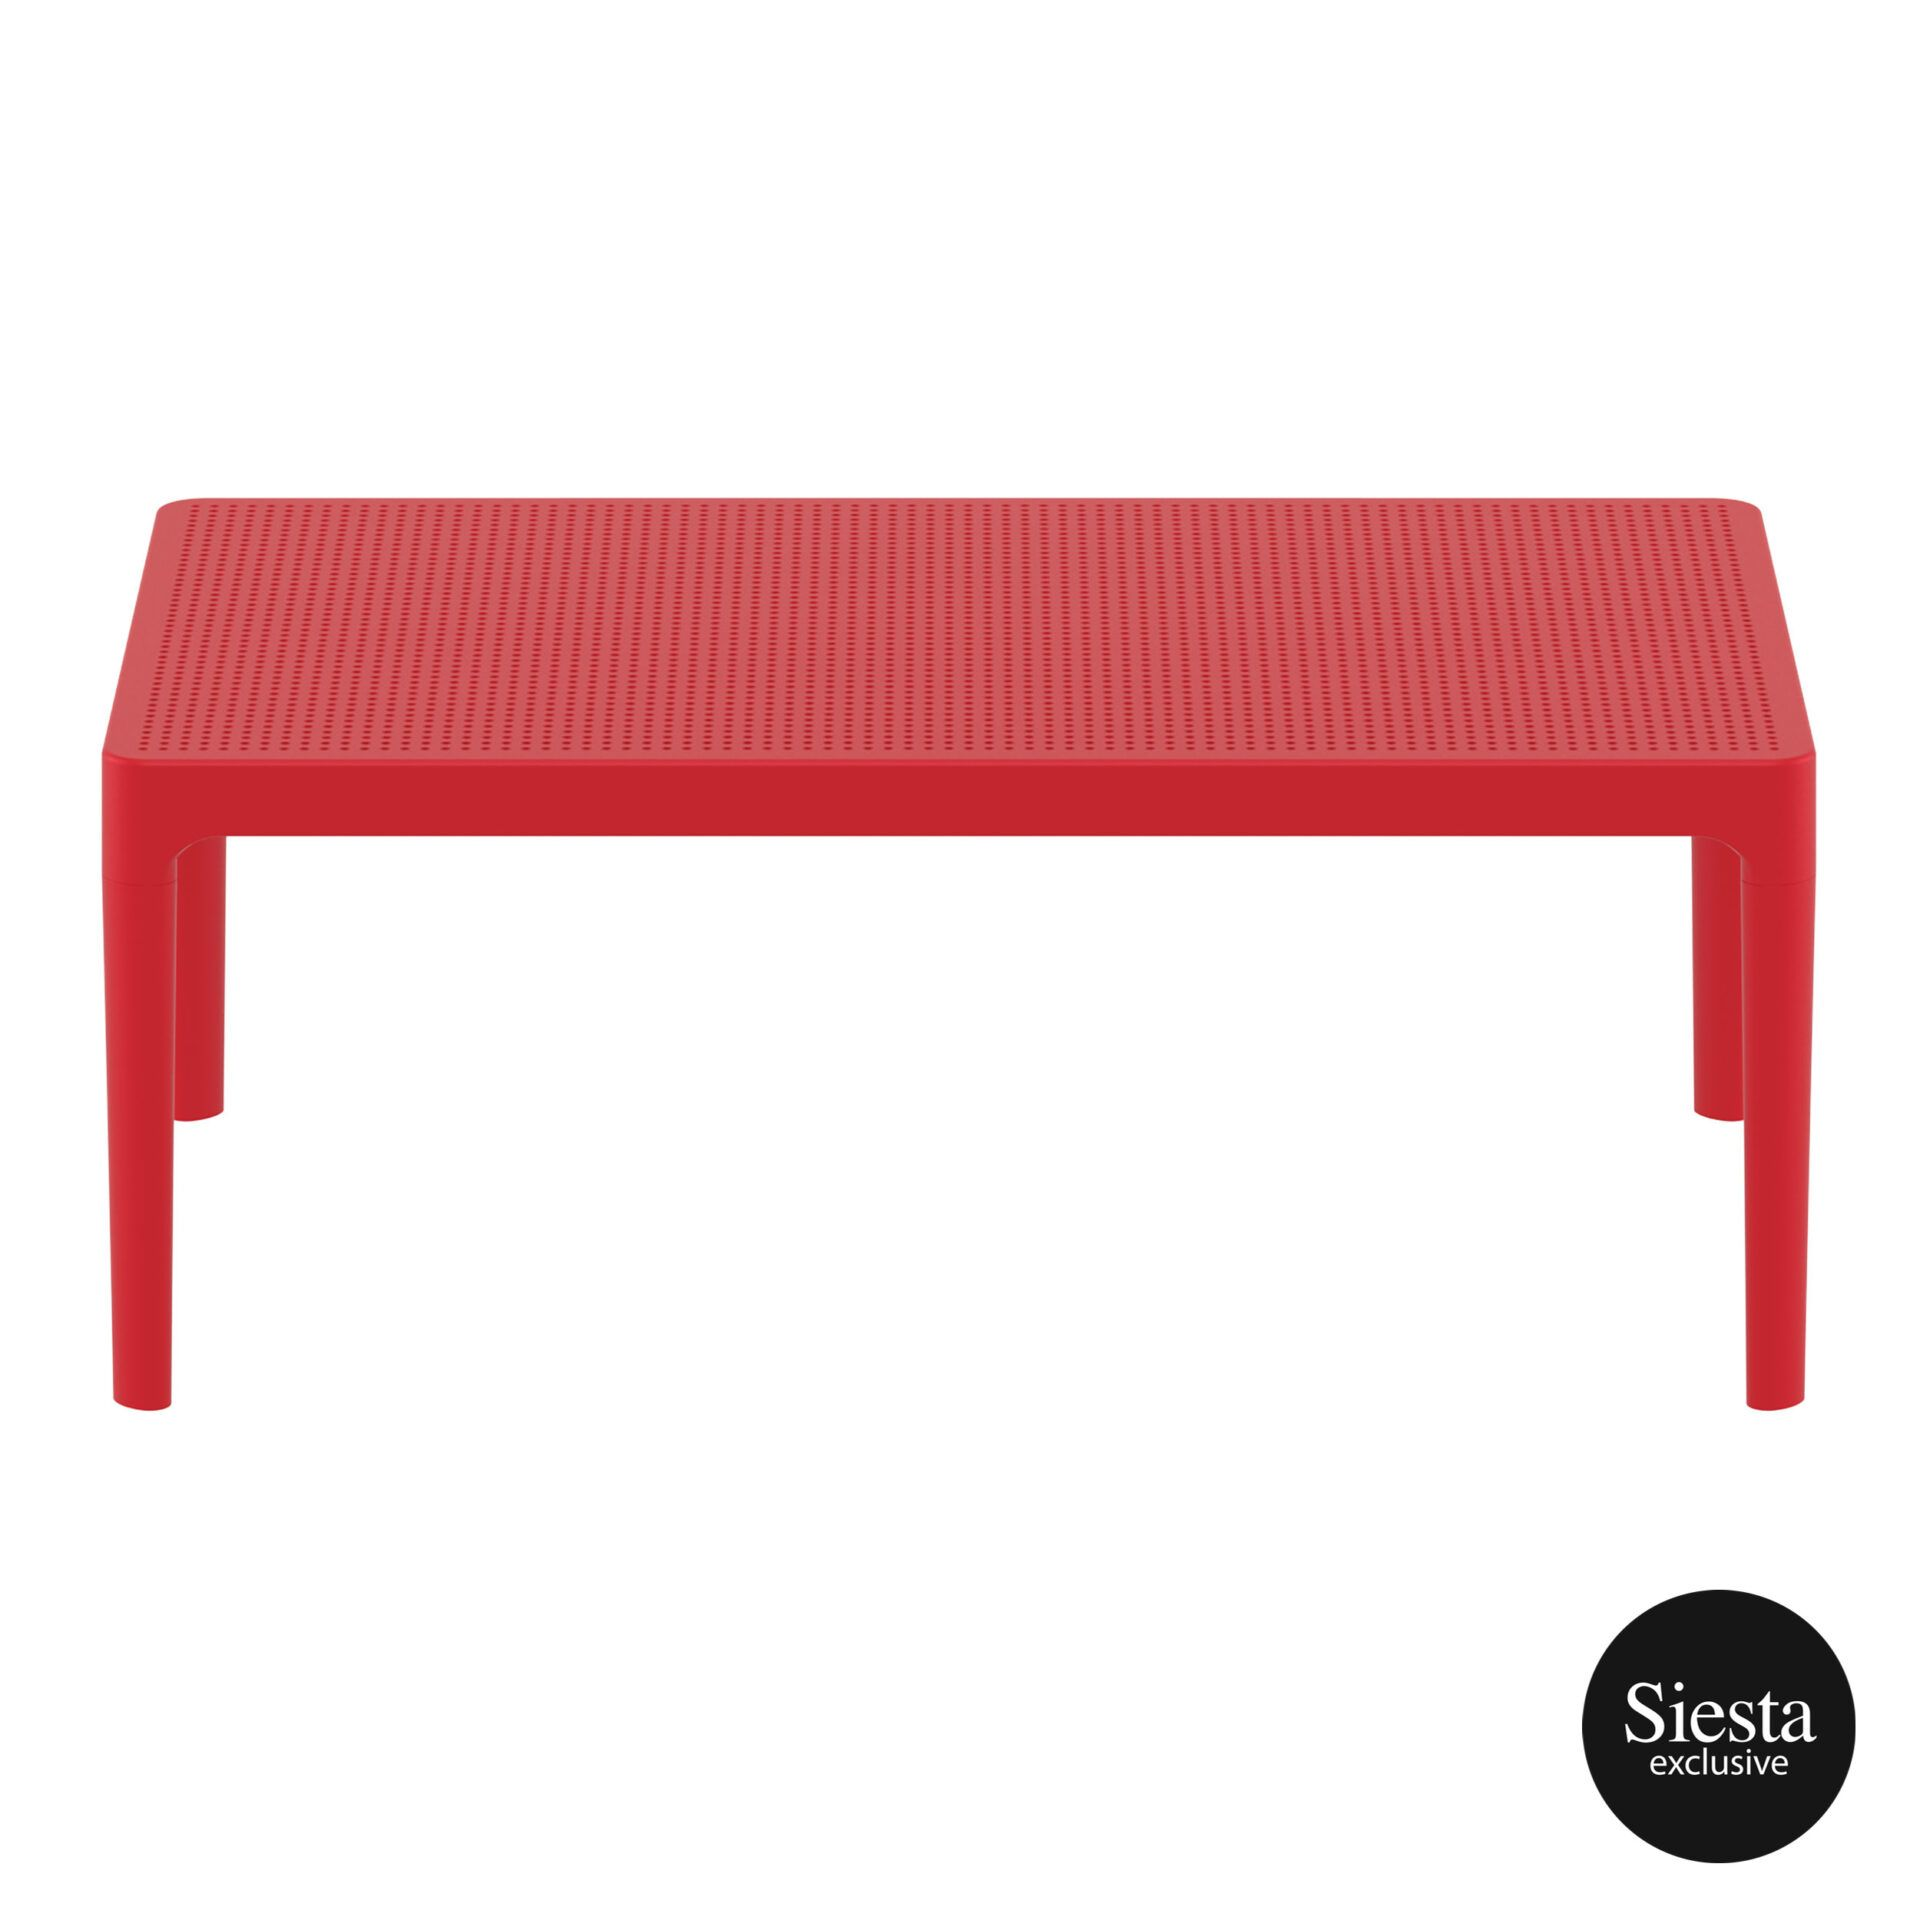 polypropylene outdoor sky lounge coffee table red long edge 1